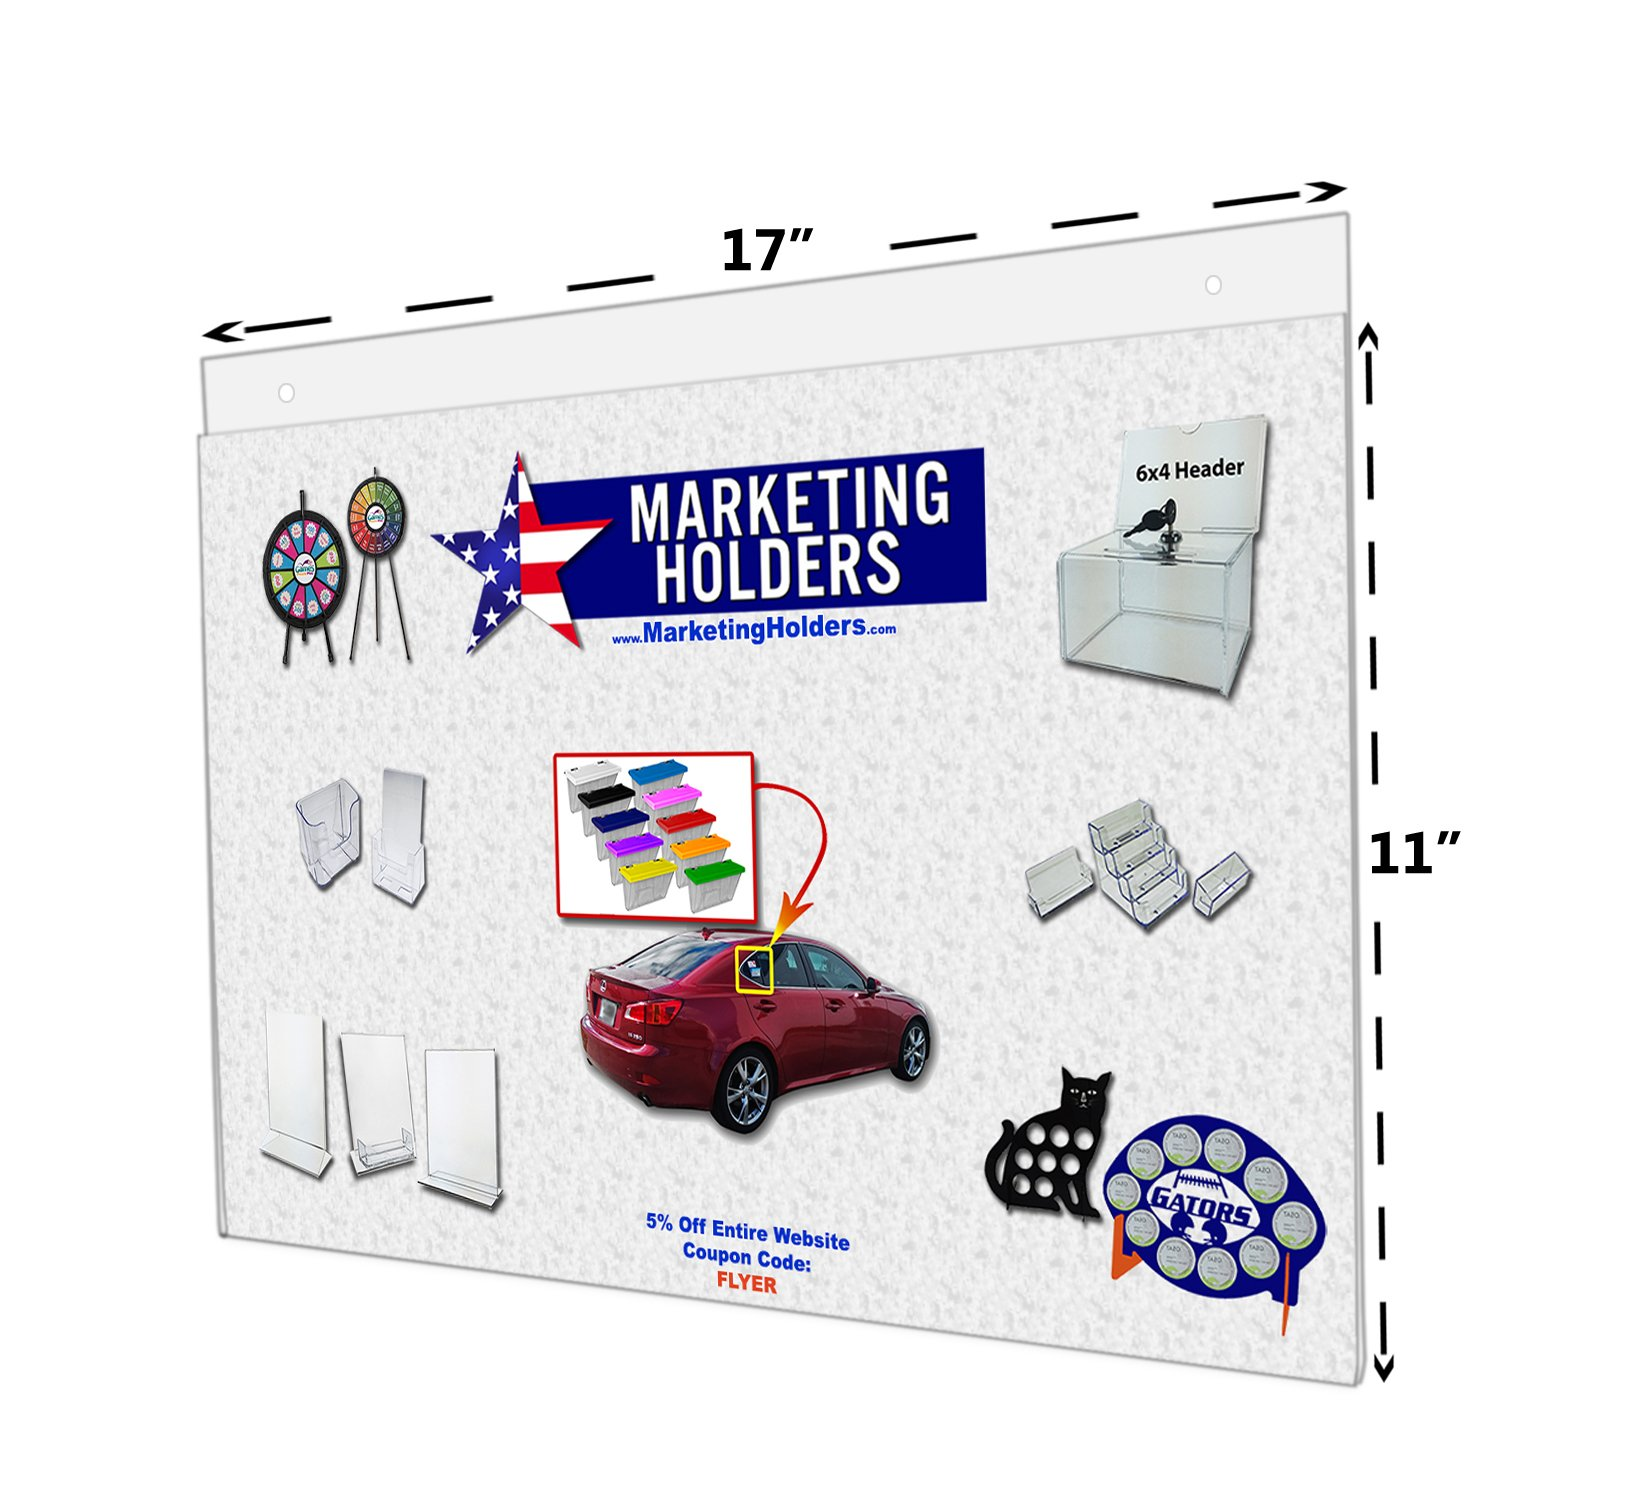 Marketing Holders Wall Mount Sign Holder Clear Ad Display Frame Acrylic Wholesale 17''w X 11''h With Holes Lot of 20 by Marketing Holders (Image #3)